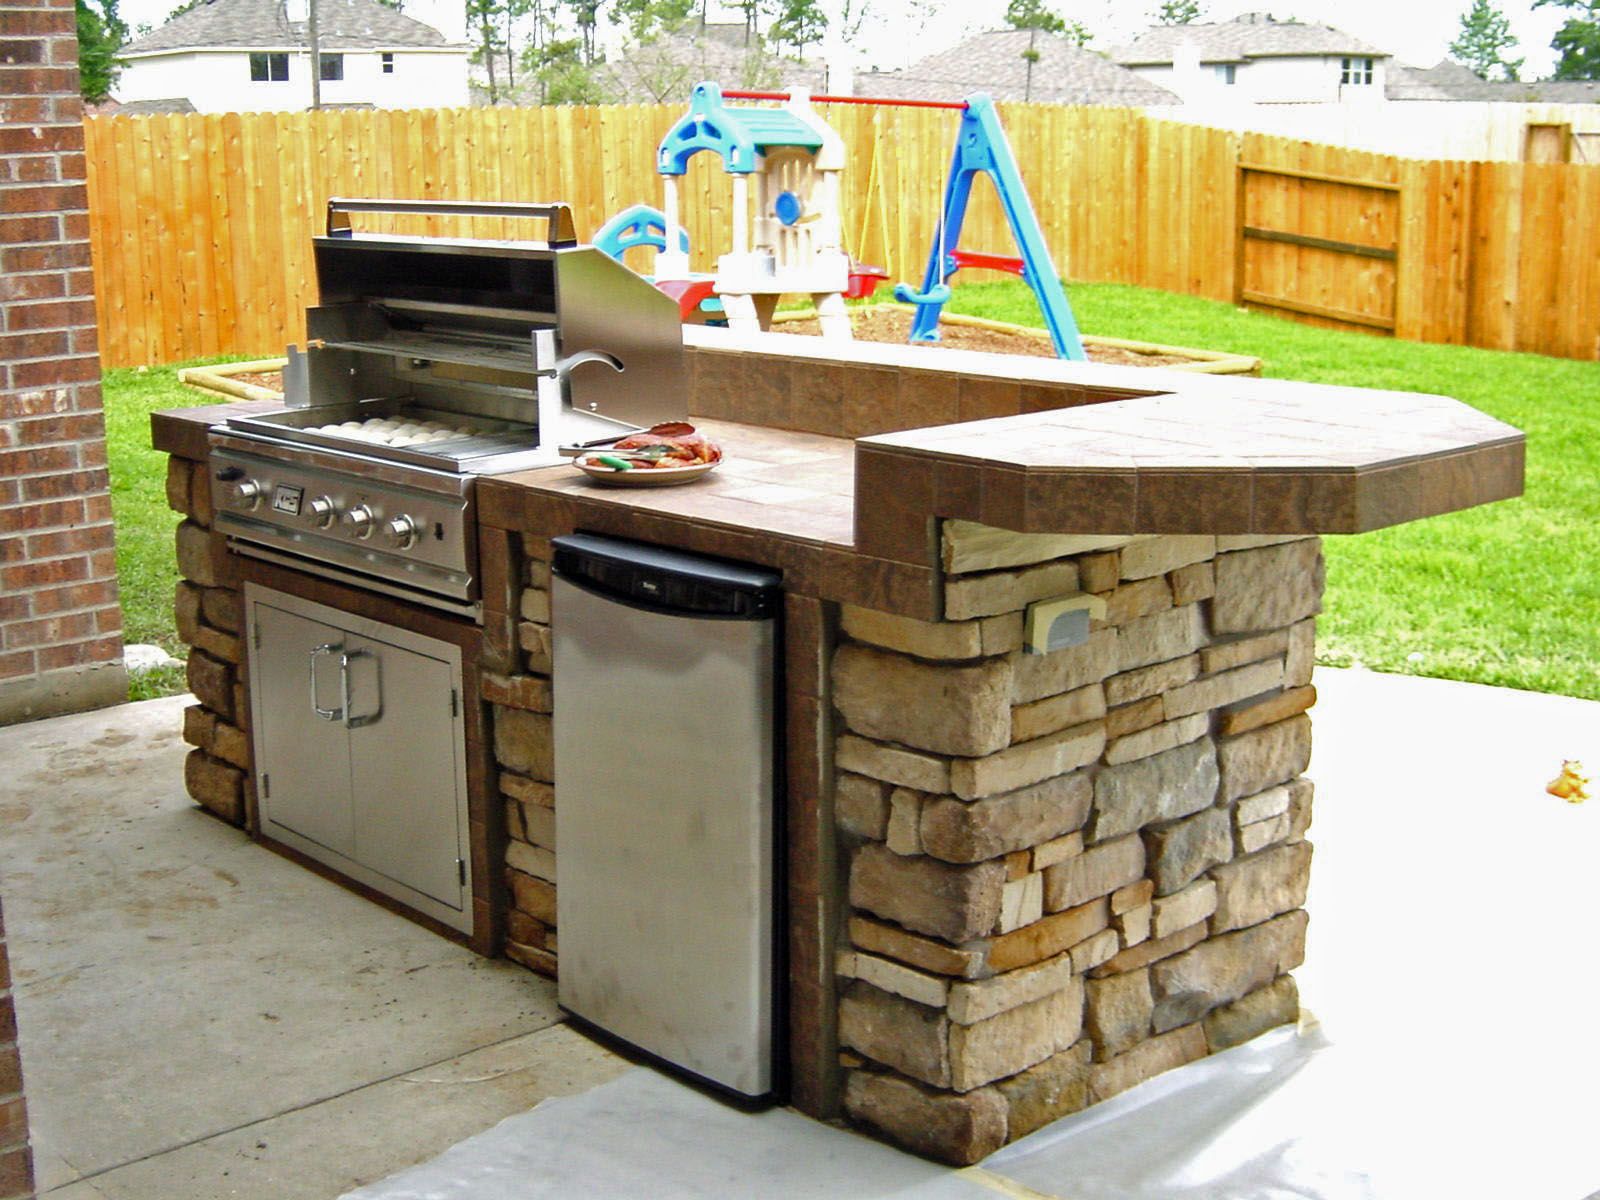 Http Www Outdoorhomescapes Com Sitebuildercontent Sitebuilderpictures Dsc0016 Small Outdoor Kitchens Small Outdoor Kitchen Design Outdoor Kitchen Countertops